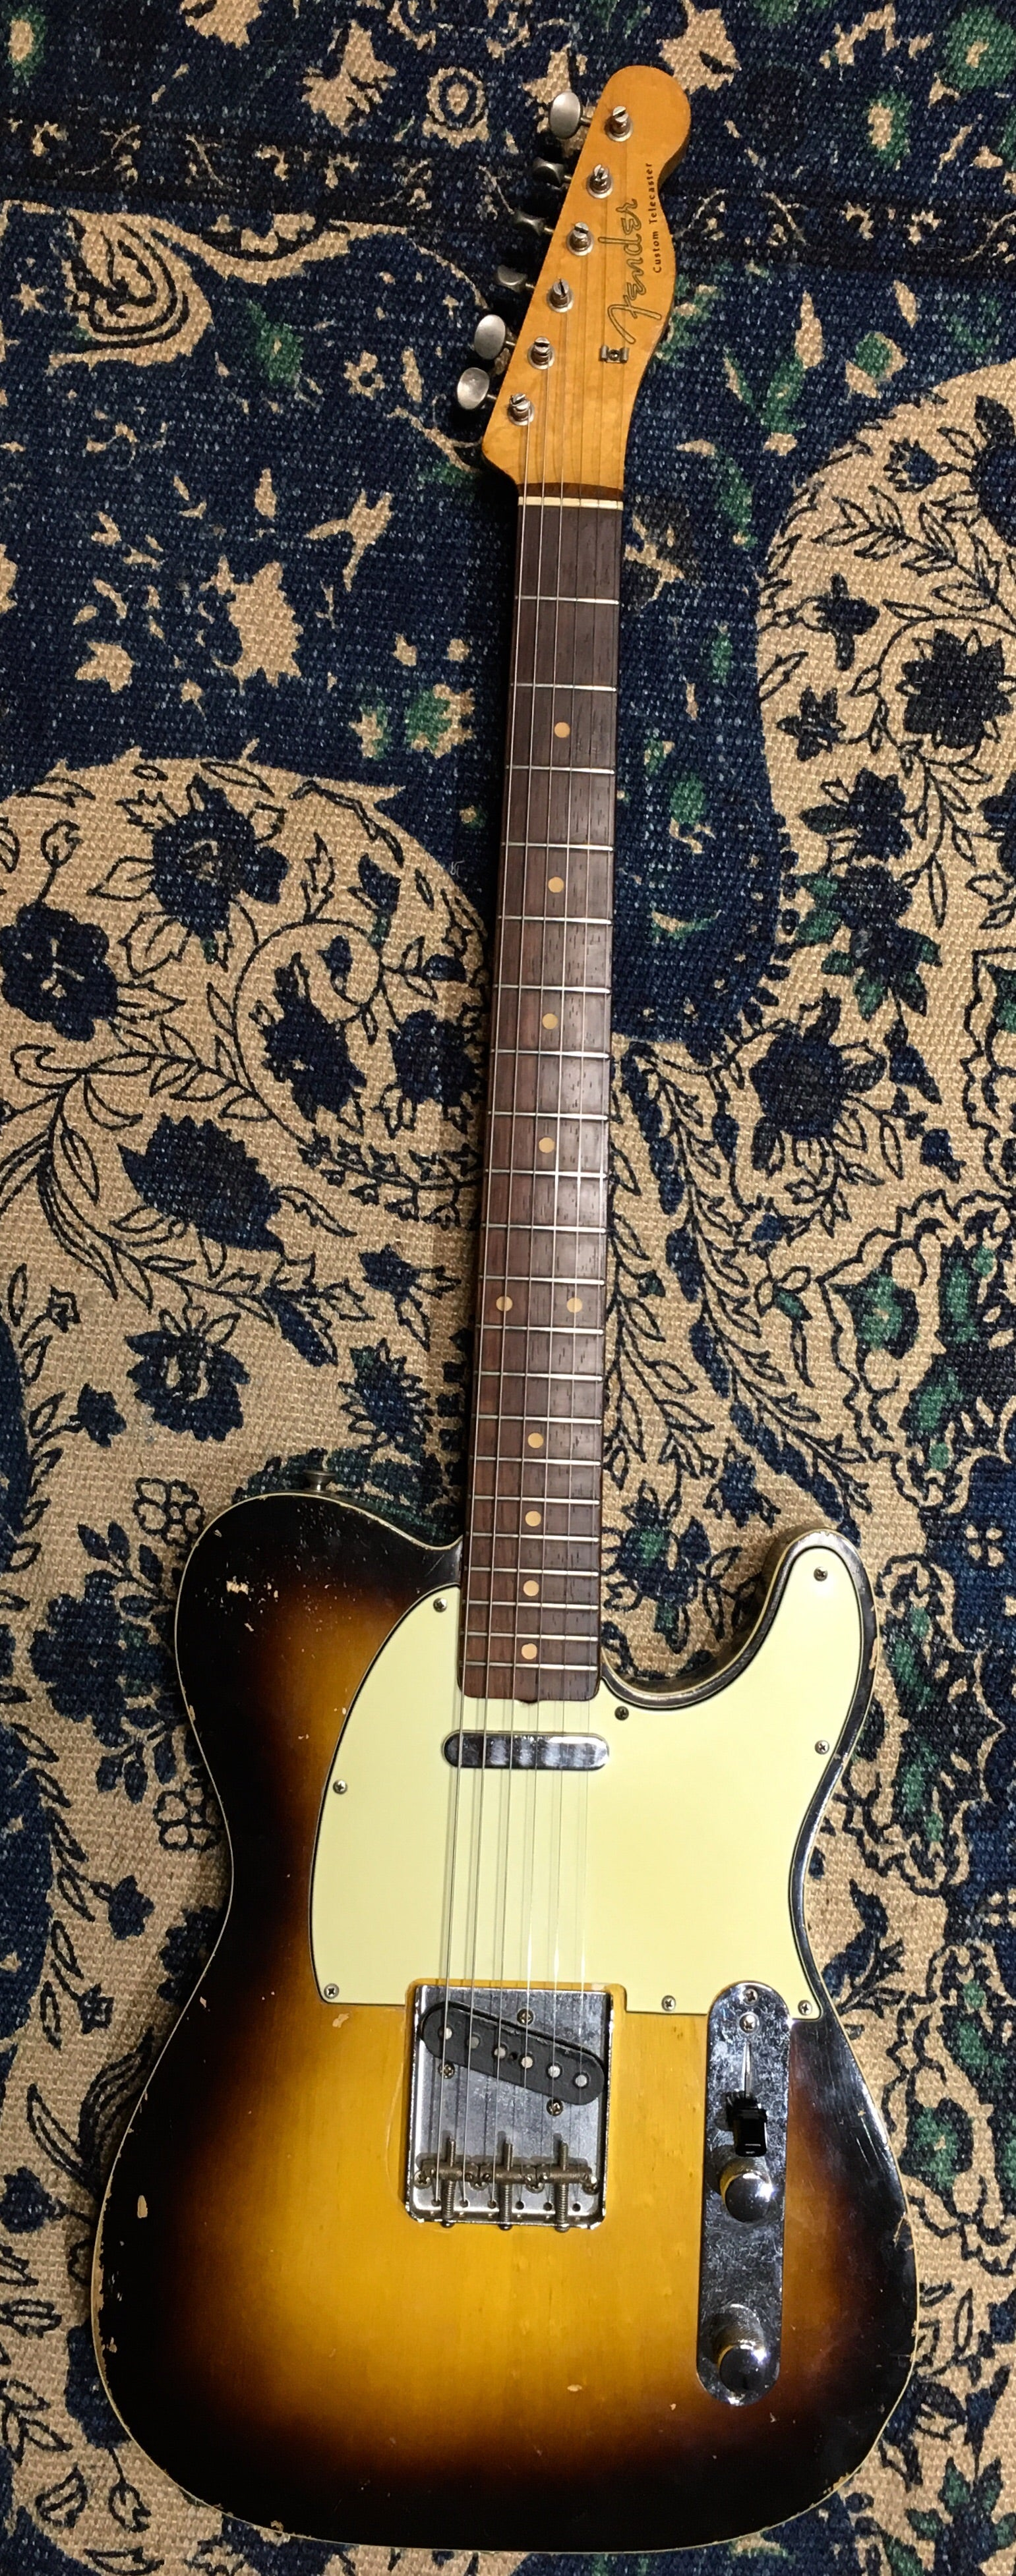 VERY RARE 1960 Double-bound Two-tone sunburst Telecaster Custom